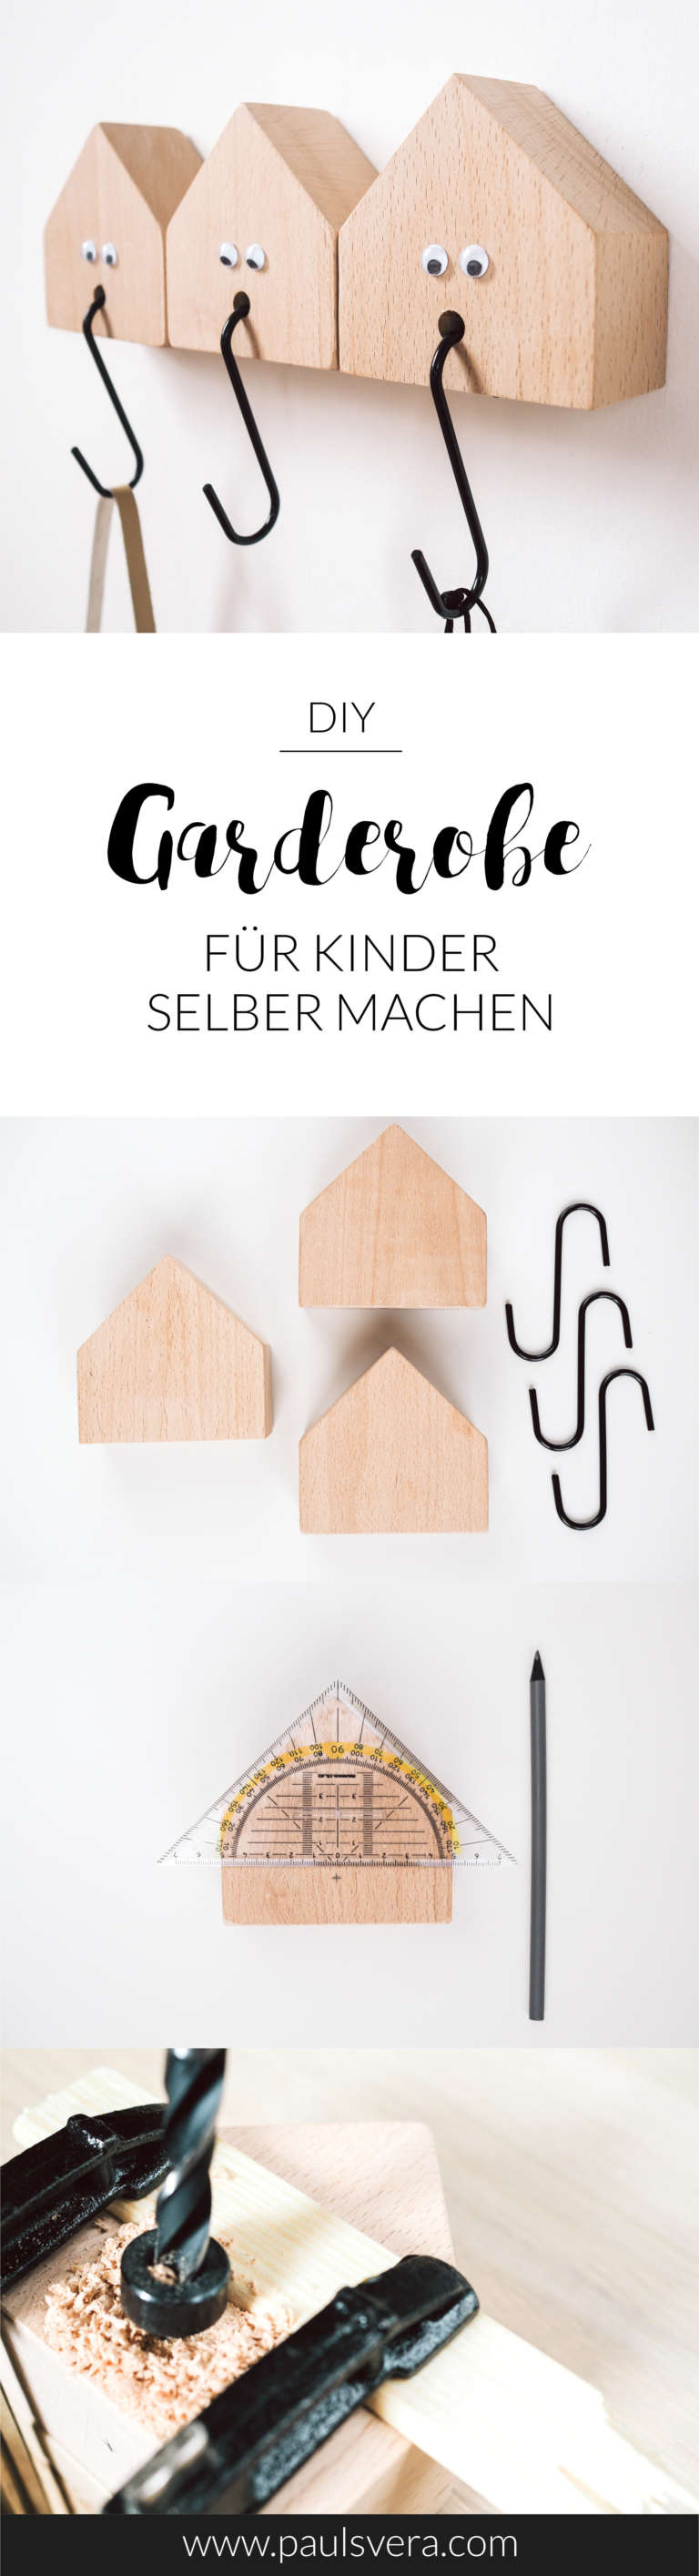 diy kinder garderobe selber bauen paulsvera. Black Bedroom Furniture Sets. Home Design Ideas